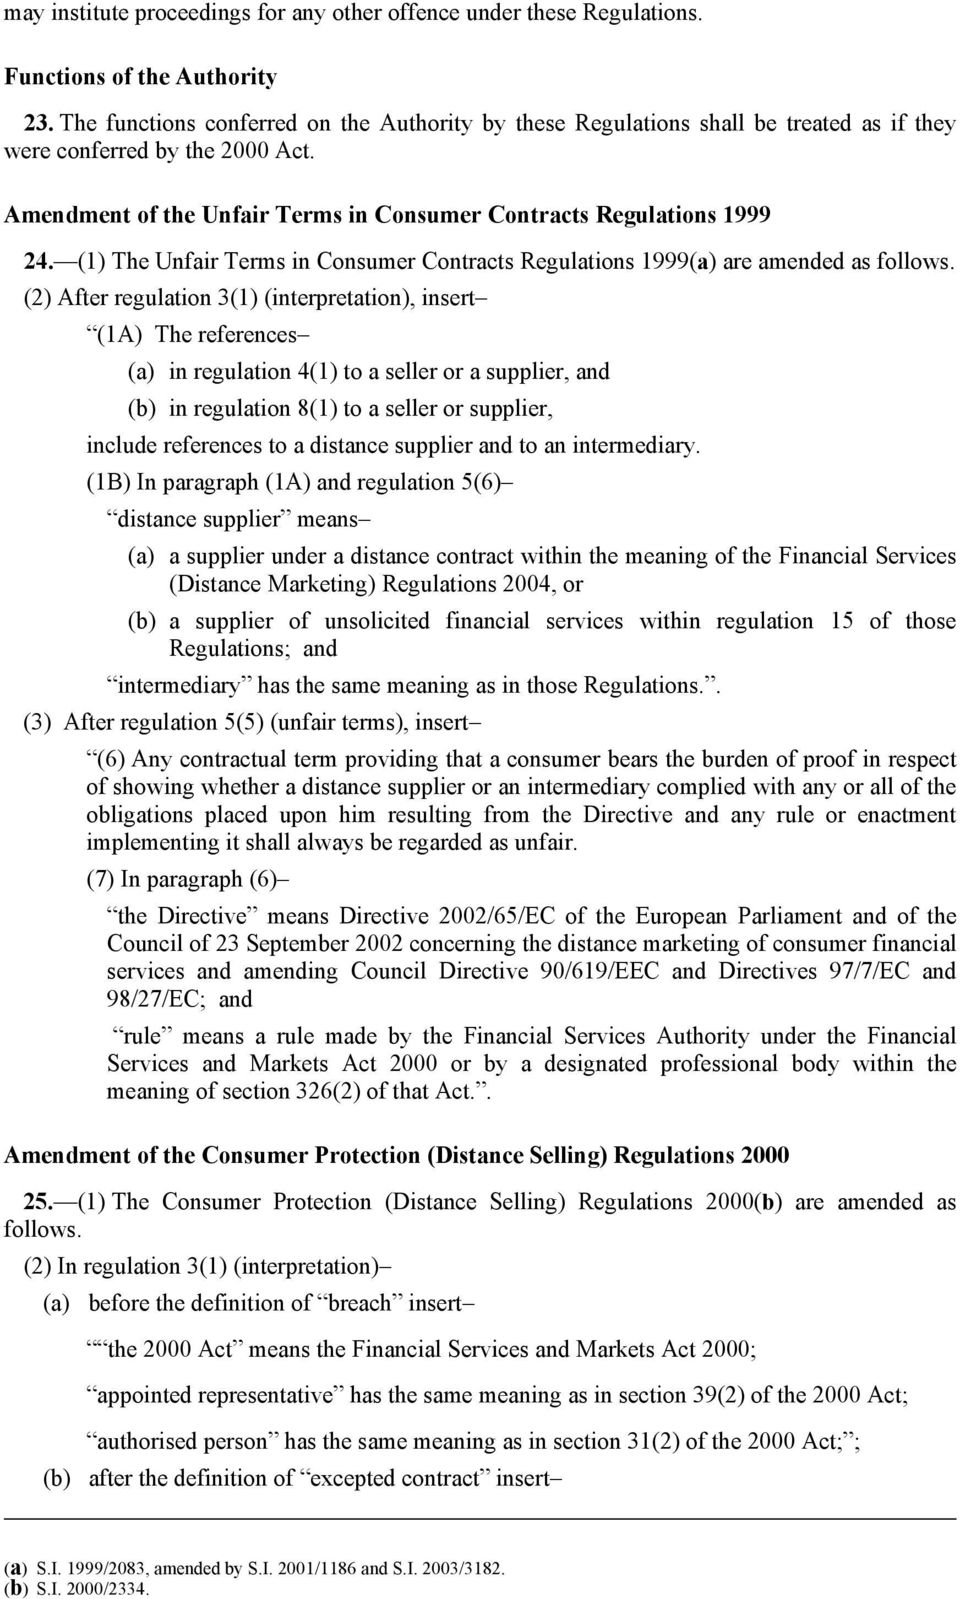 (1) The Unfair Terms in Consumer Contracts Regulations 1999(a) are amended as follows.